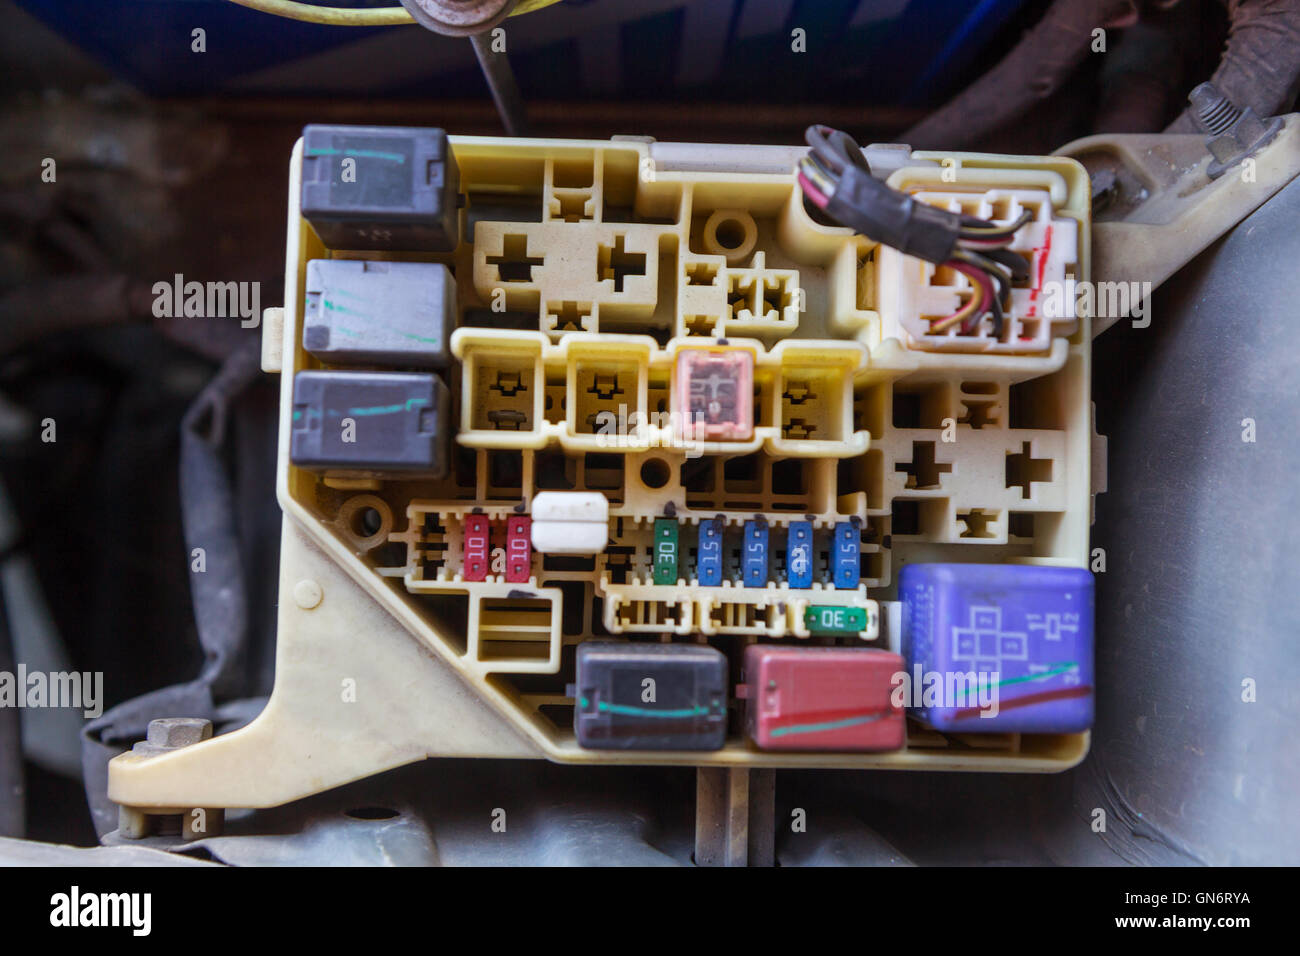 hight resolution of the man opening fuse box of old car stock photo 116320494 alamy old apartment fuse box old car fuse box